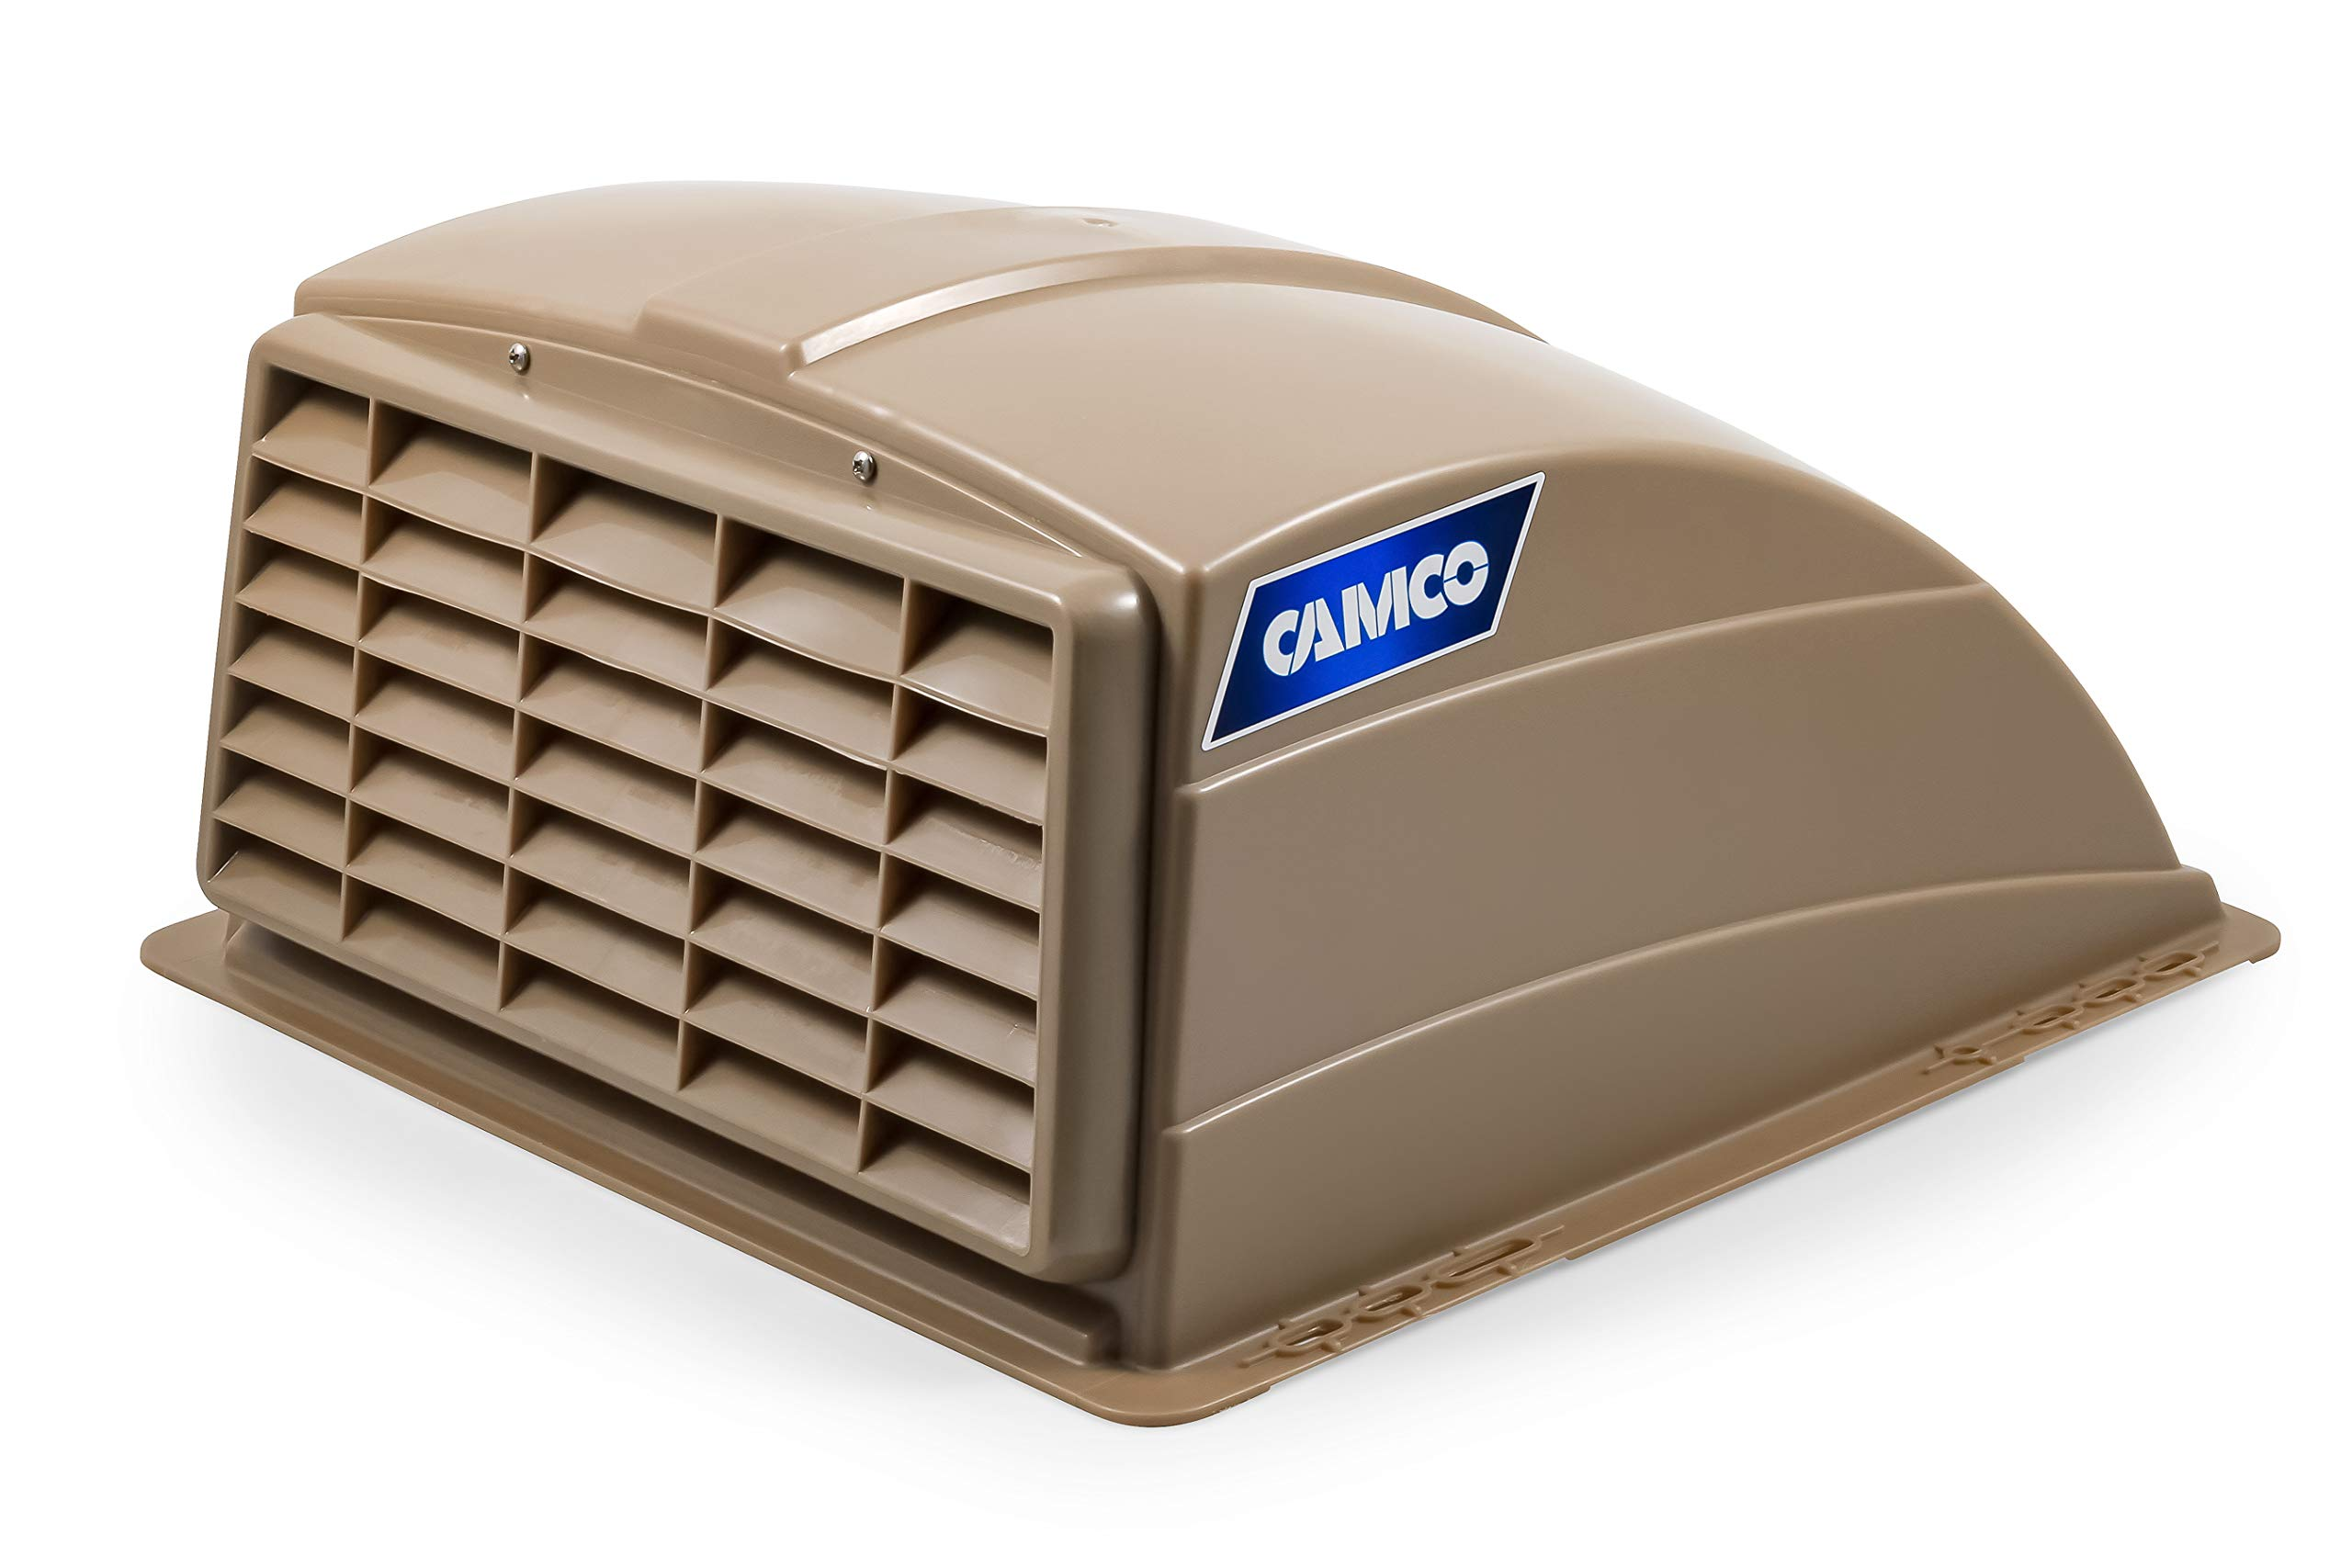 Camco Standard Roof Vent Cover, Opens for Easy Cleaning, Aerodynamic Design, Easily Mounts to RV with Included Hardware-Champagne (40463) by Camco